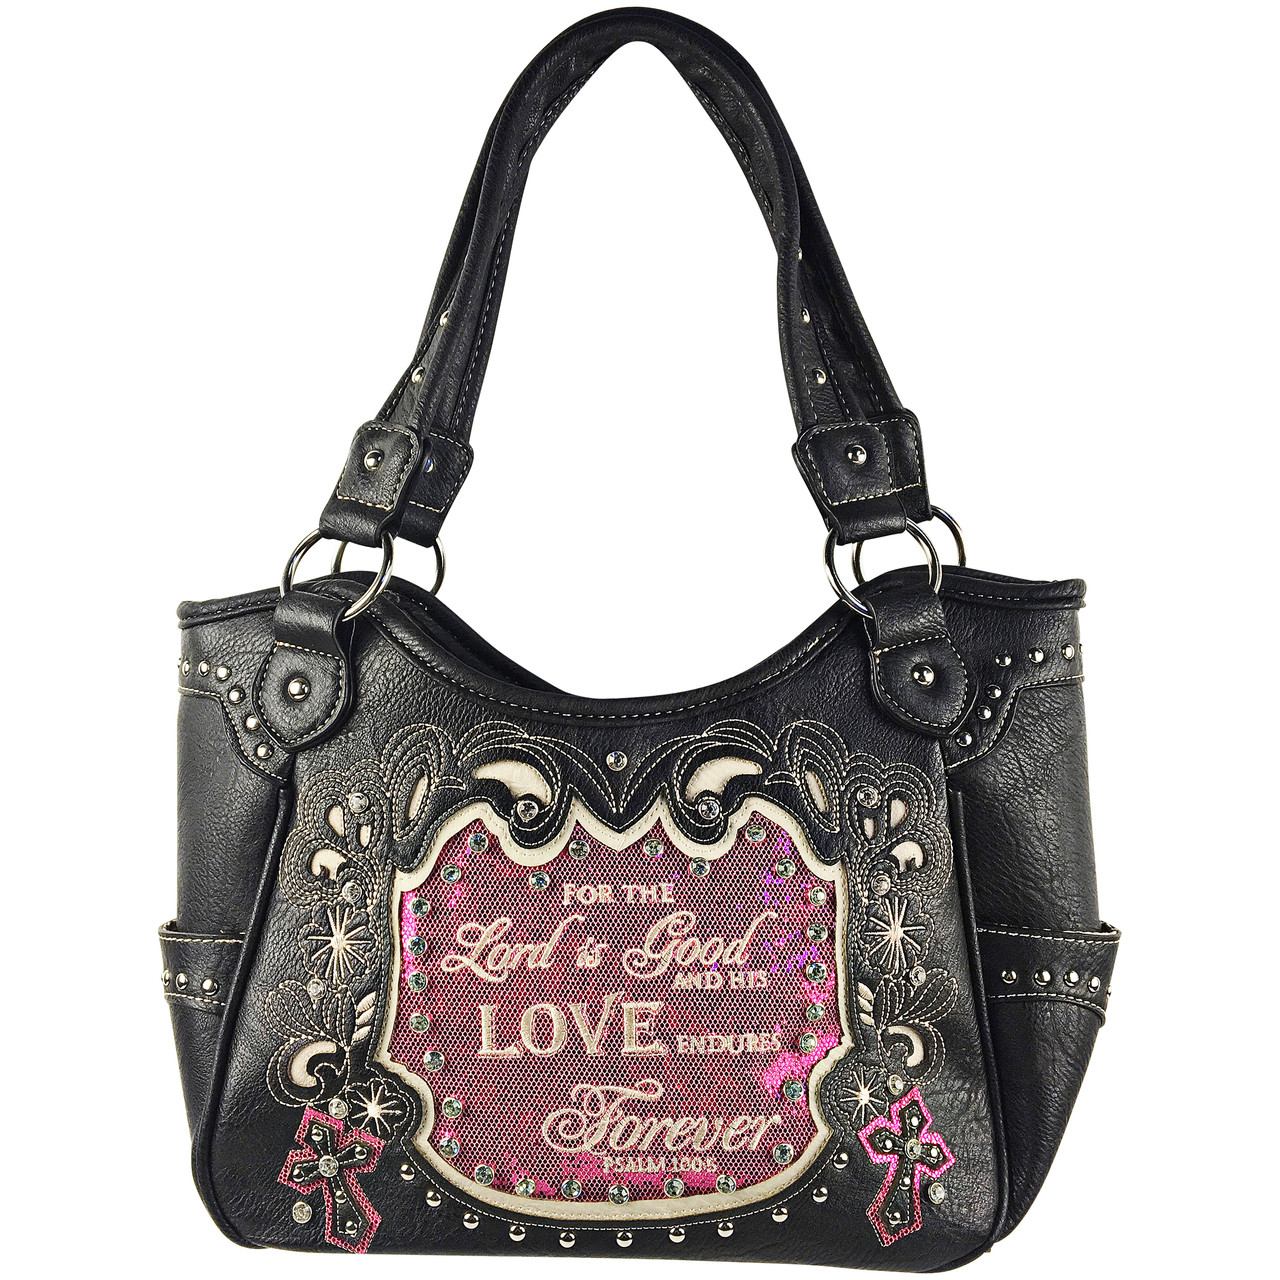 HOT PINK BIBLE LOVE QUOTE RHINESTONE STUDDED LOOK SHOULDER HANDBAG